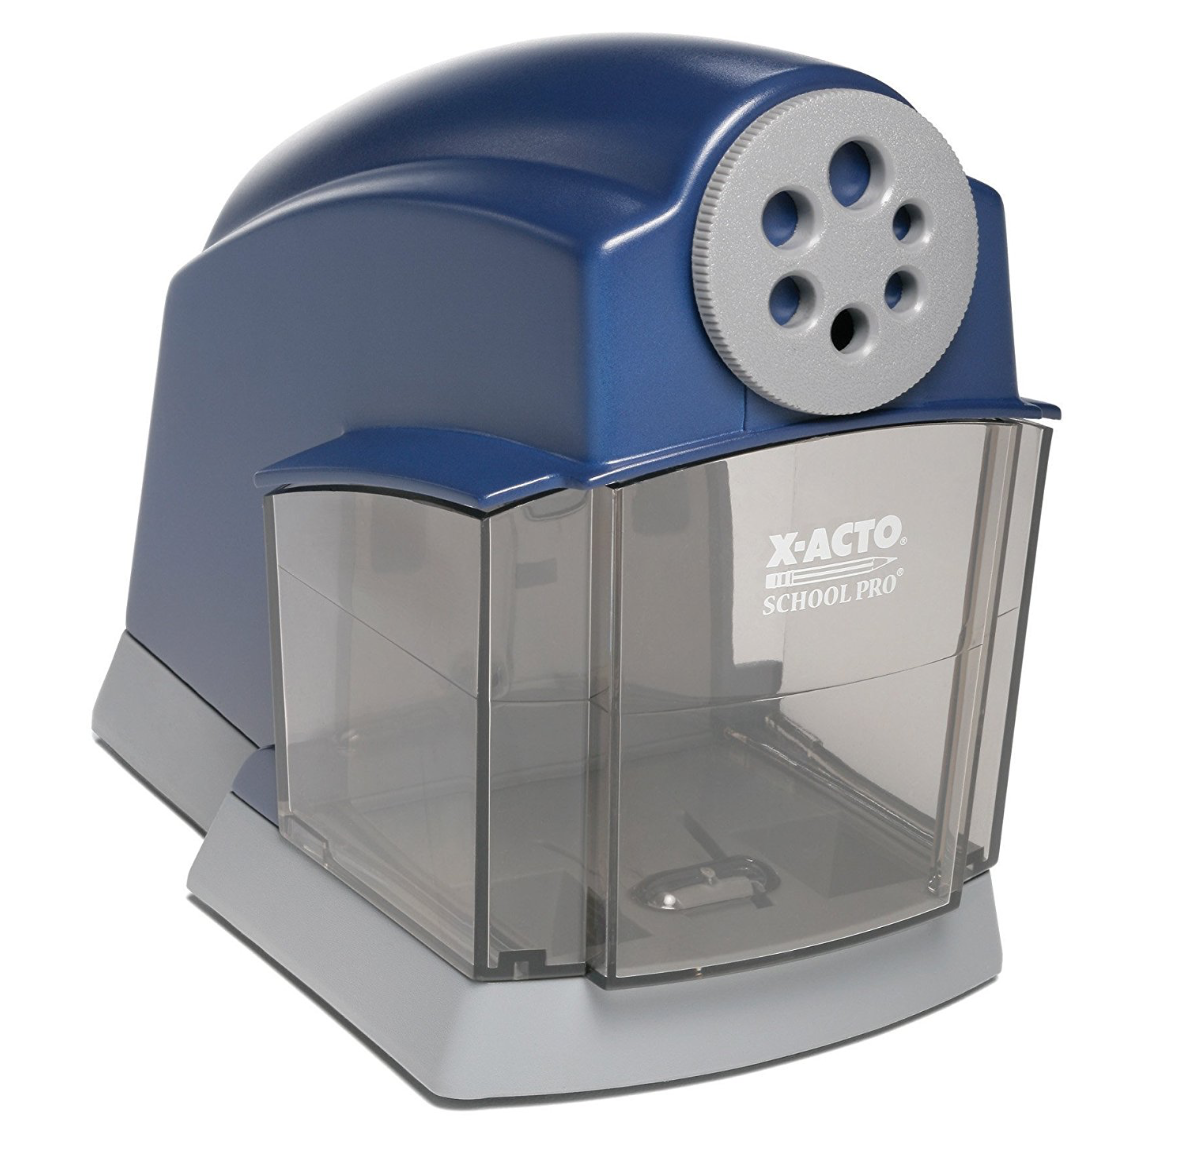 X-ACTO School Pro Electric Pencil Sharpener - From Amazon: This is THE electric pencil sharpener. This is the electric pencil you will find in every classroom! It is quite, durable, and fast. (Plus, it's really hard to beat the price.)